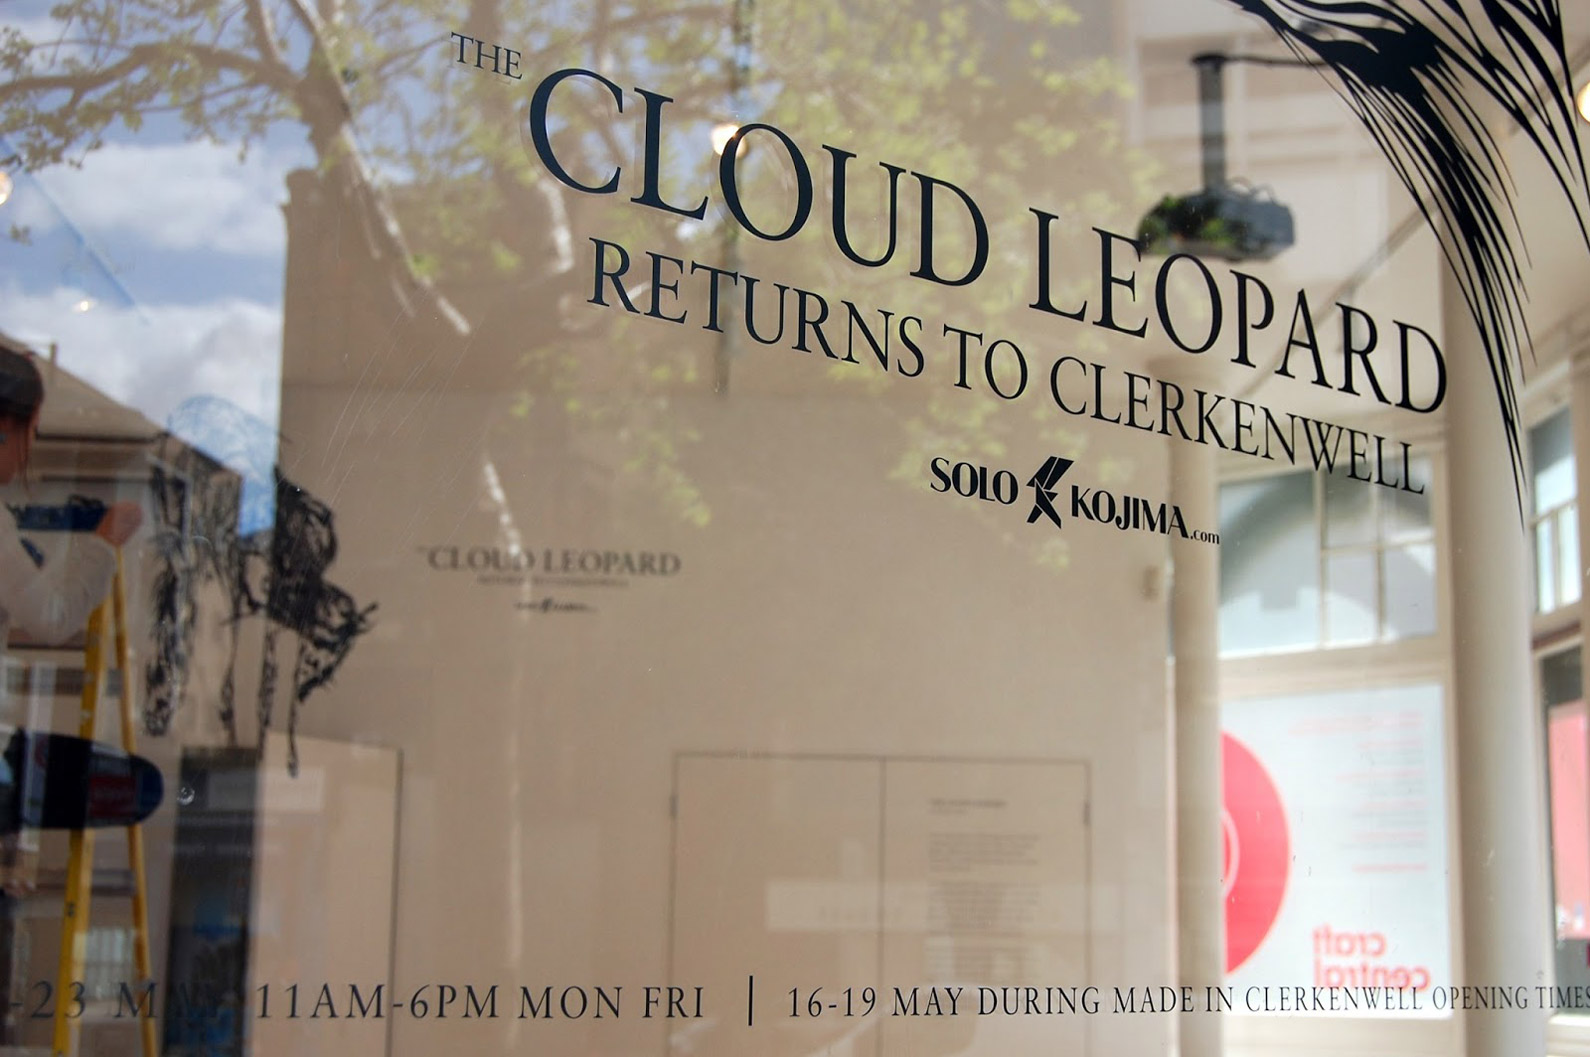 The Cloud Leopard